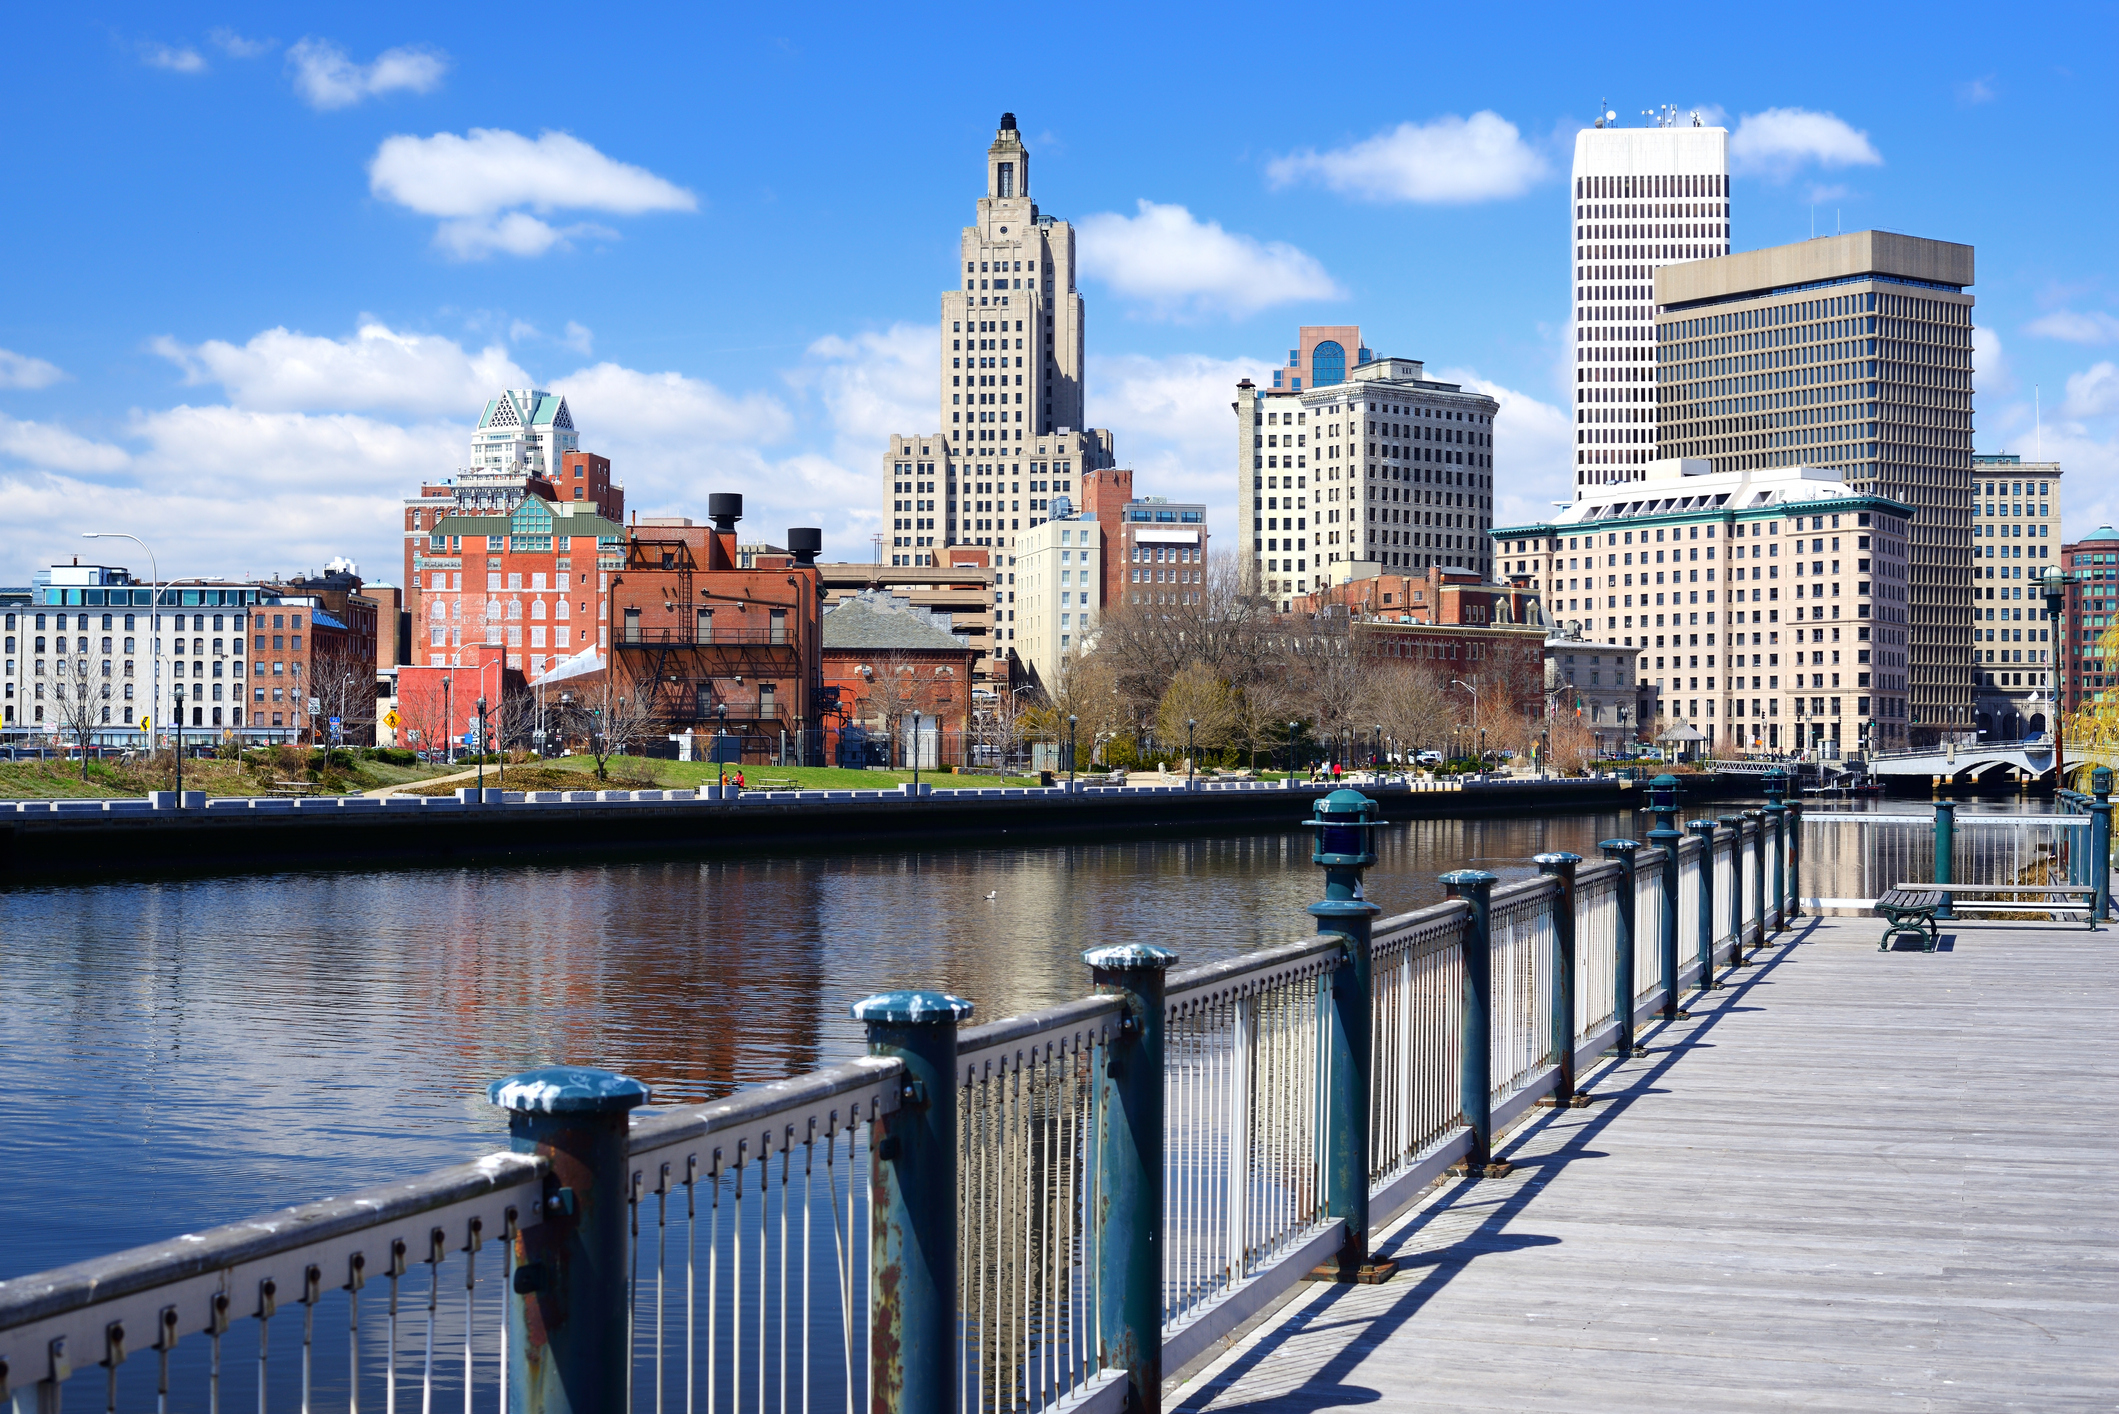 Providence Photo by SeanPavonePhoto/Getty Images